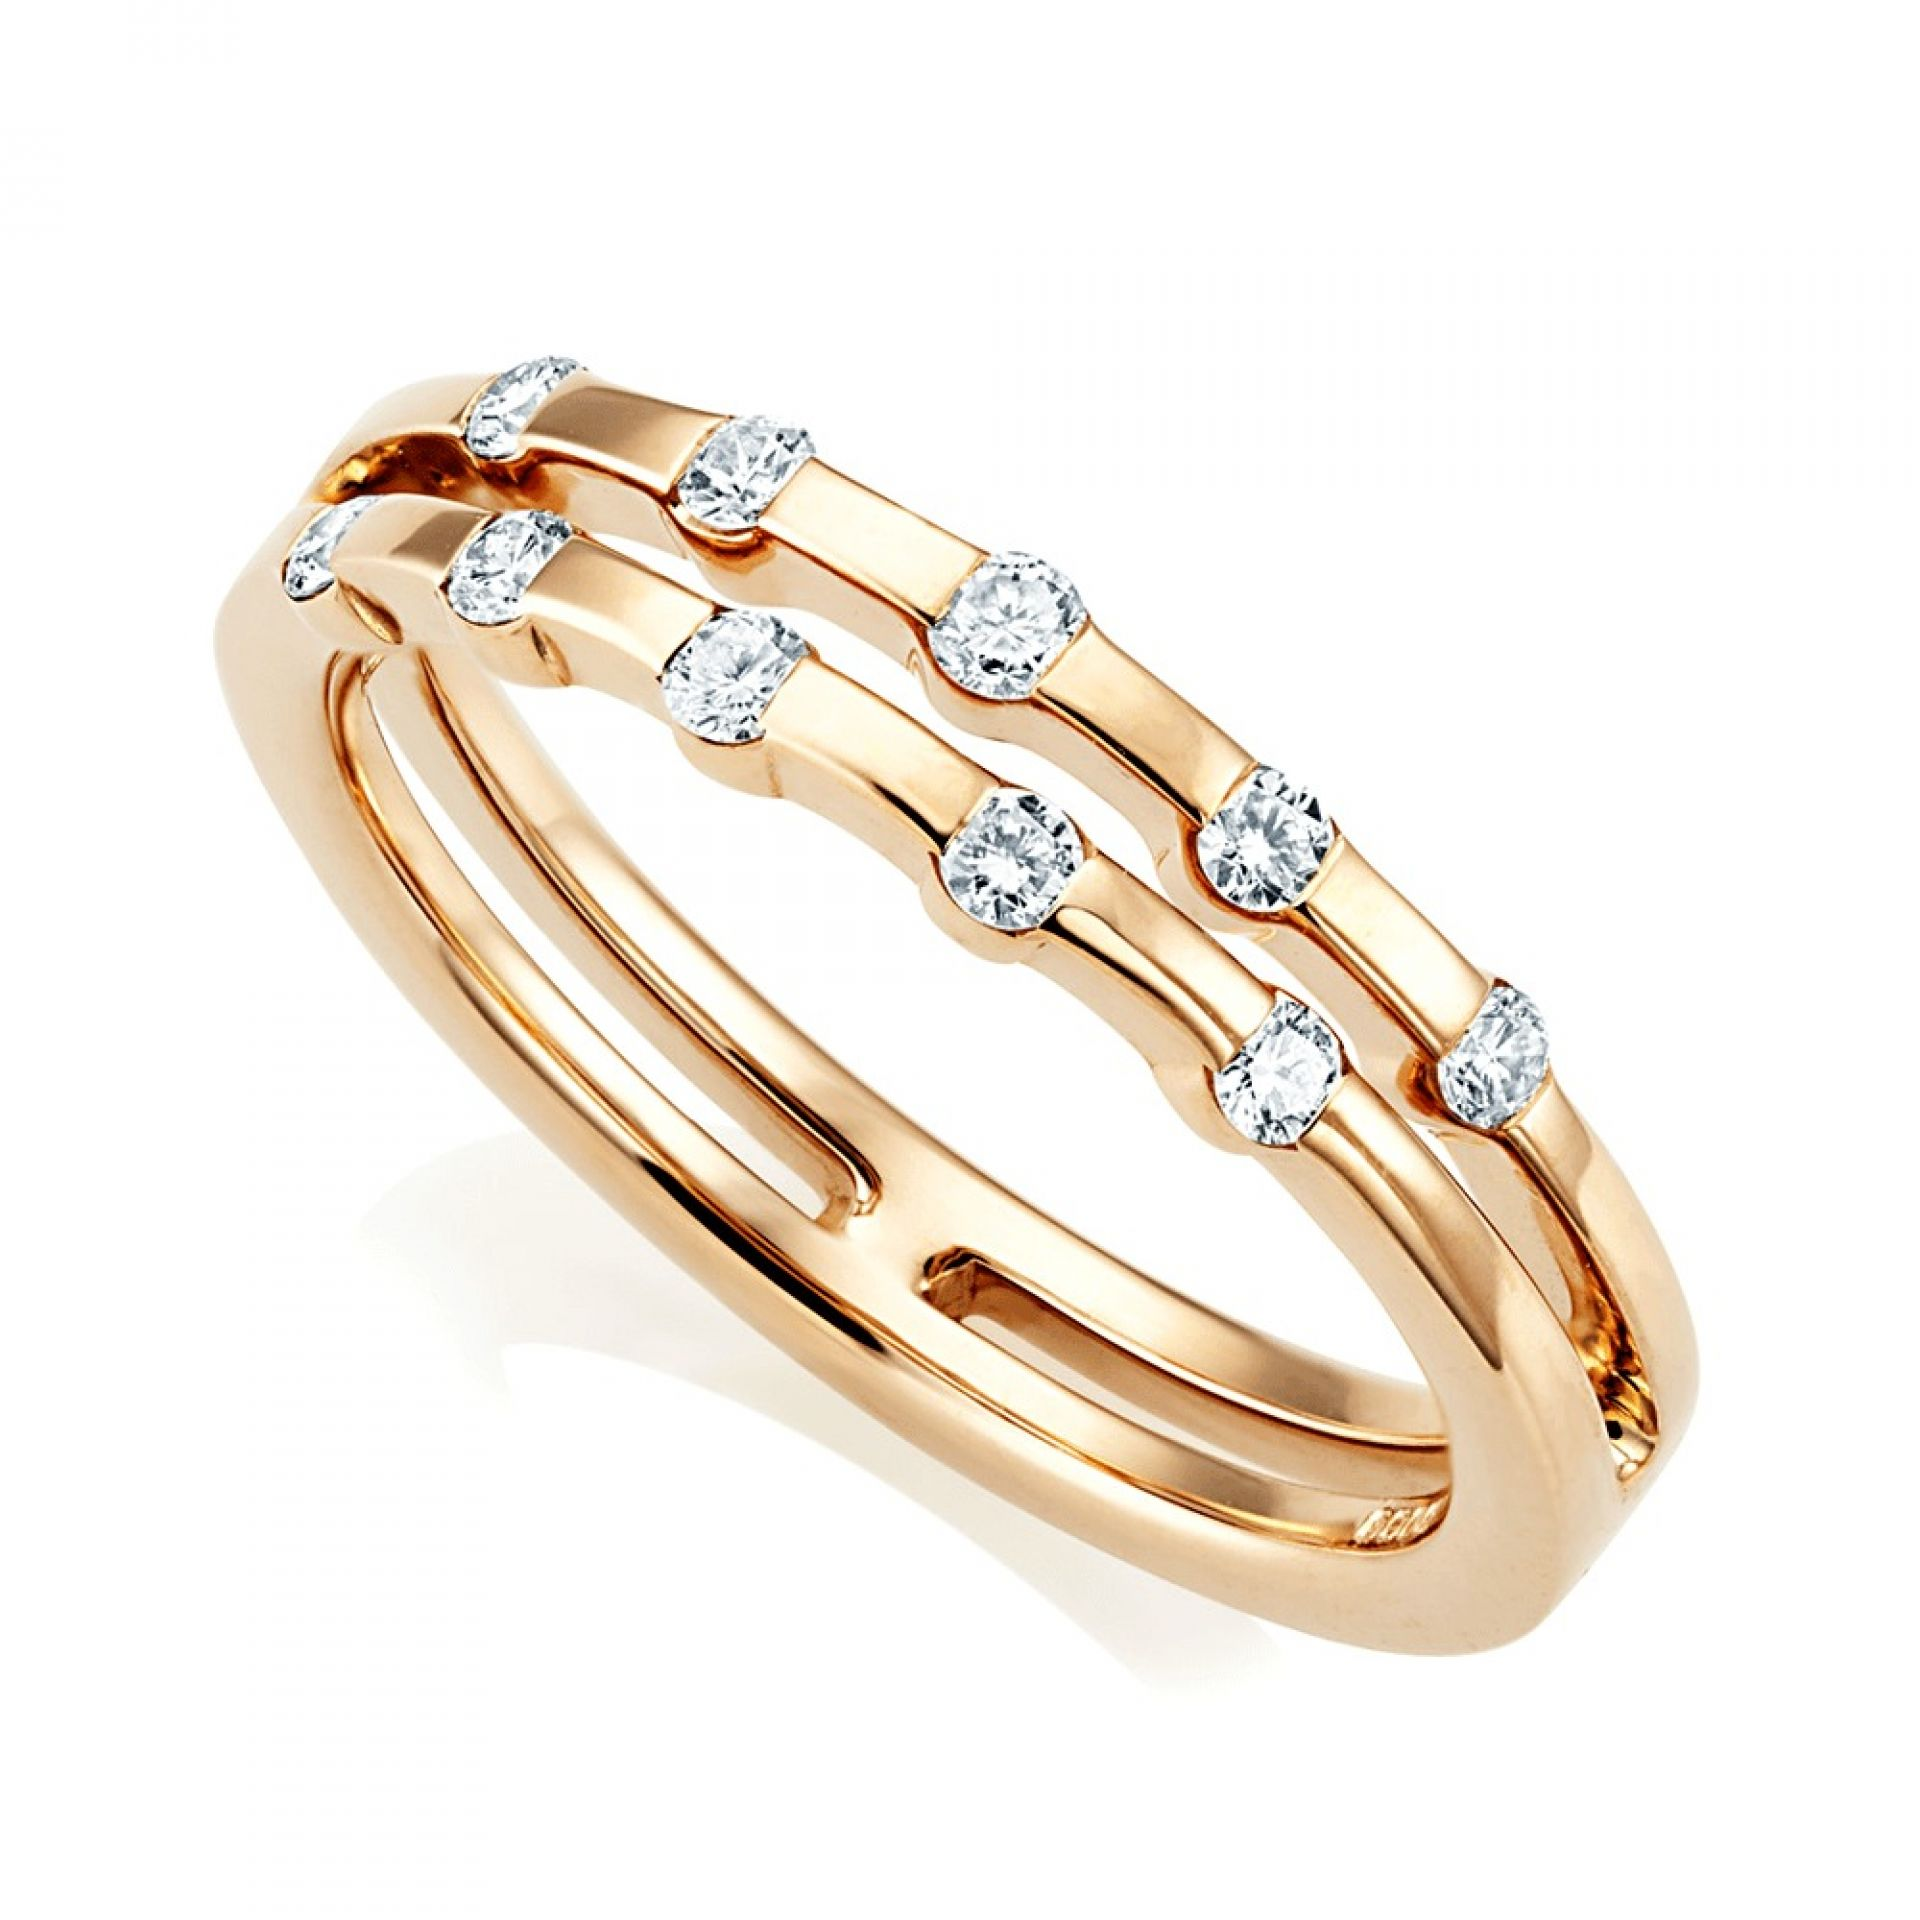 18CT ROSE GOLD DOUBLE DIAMOND RING